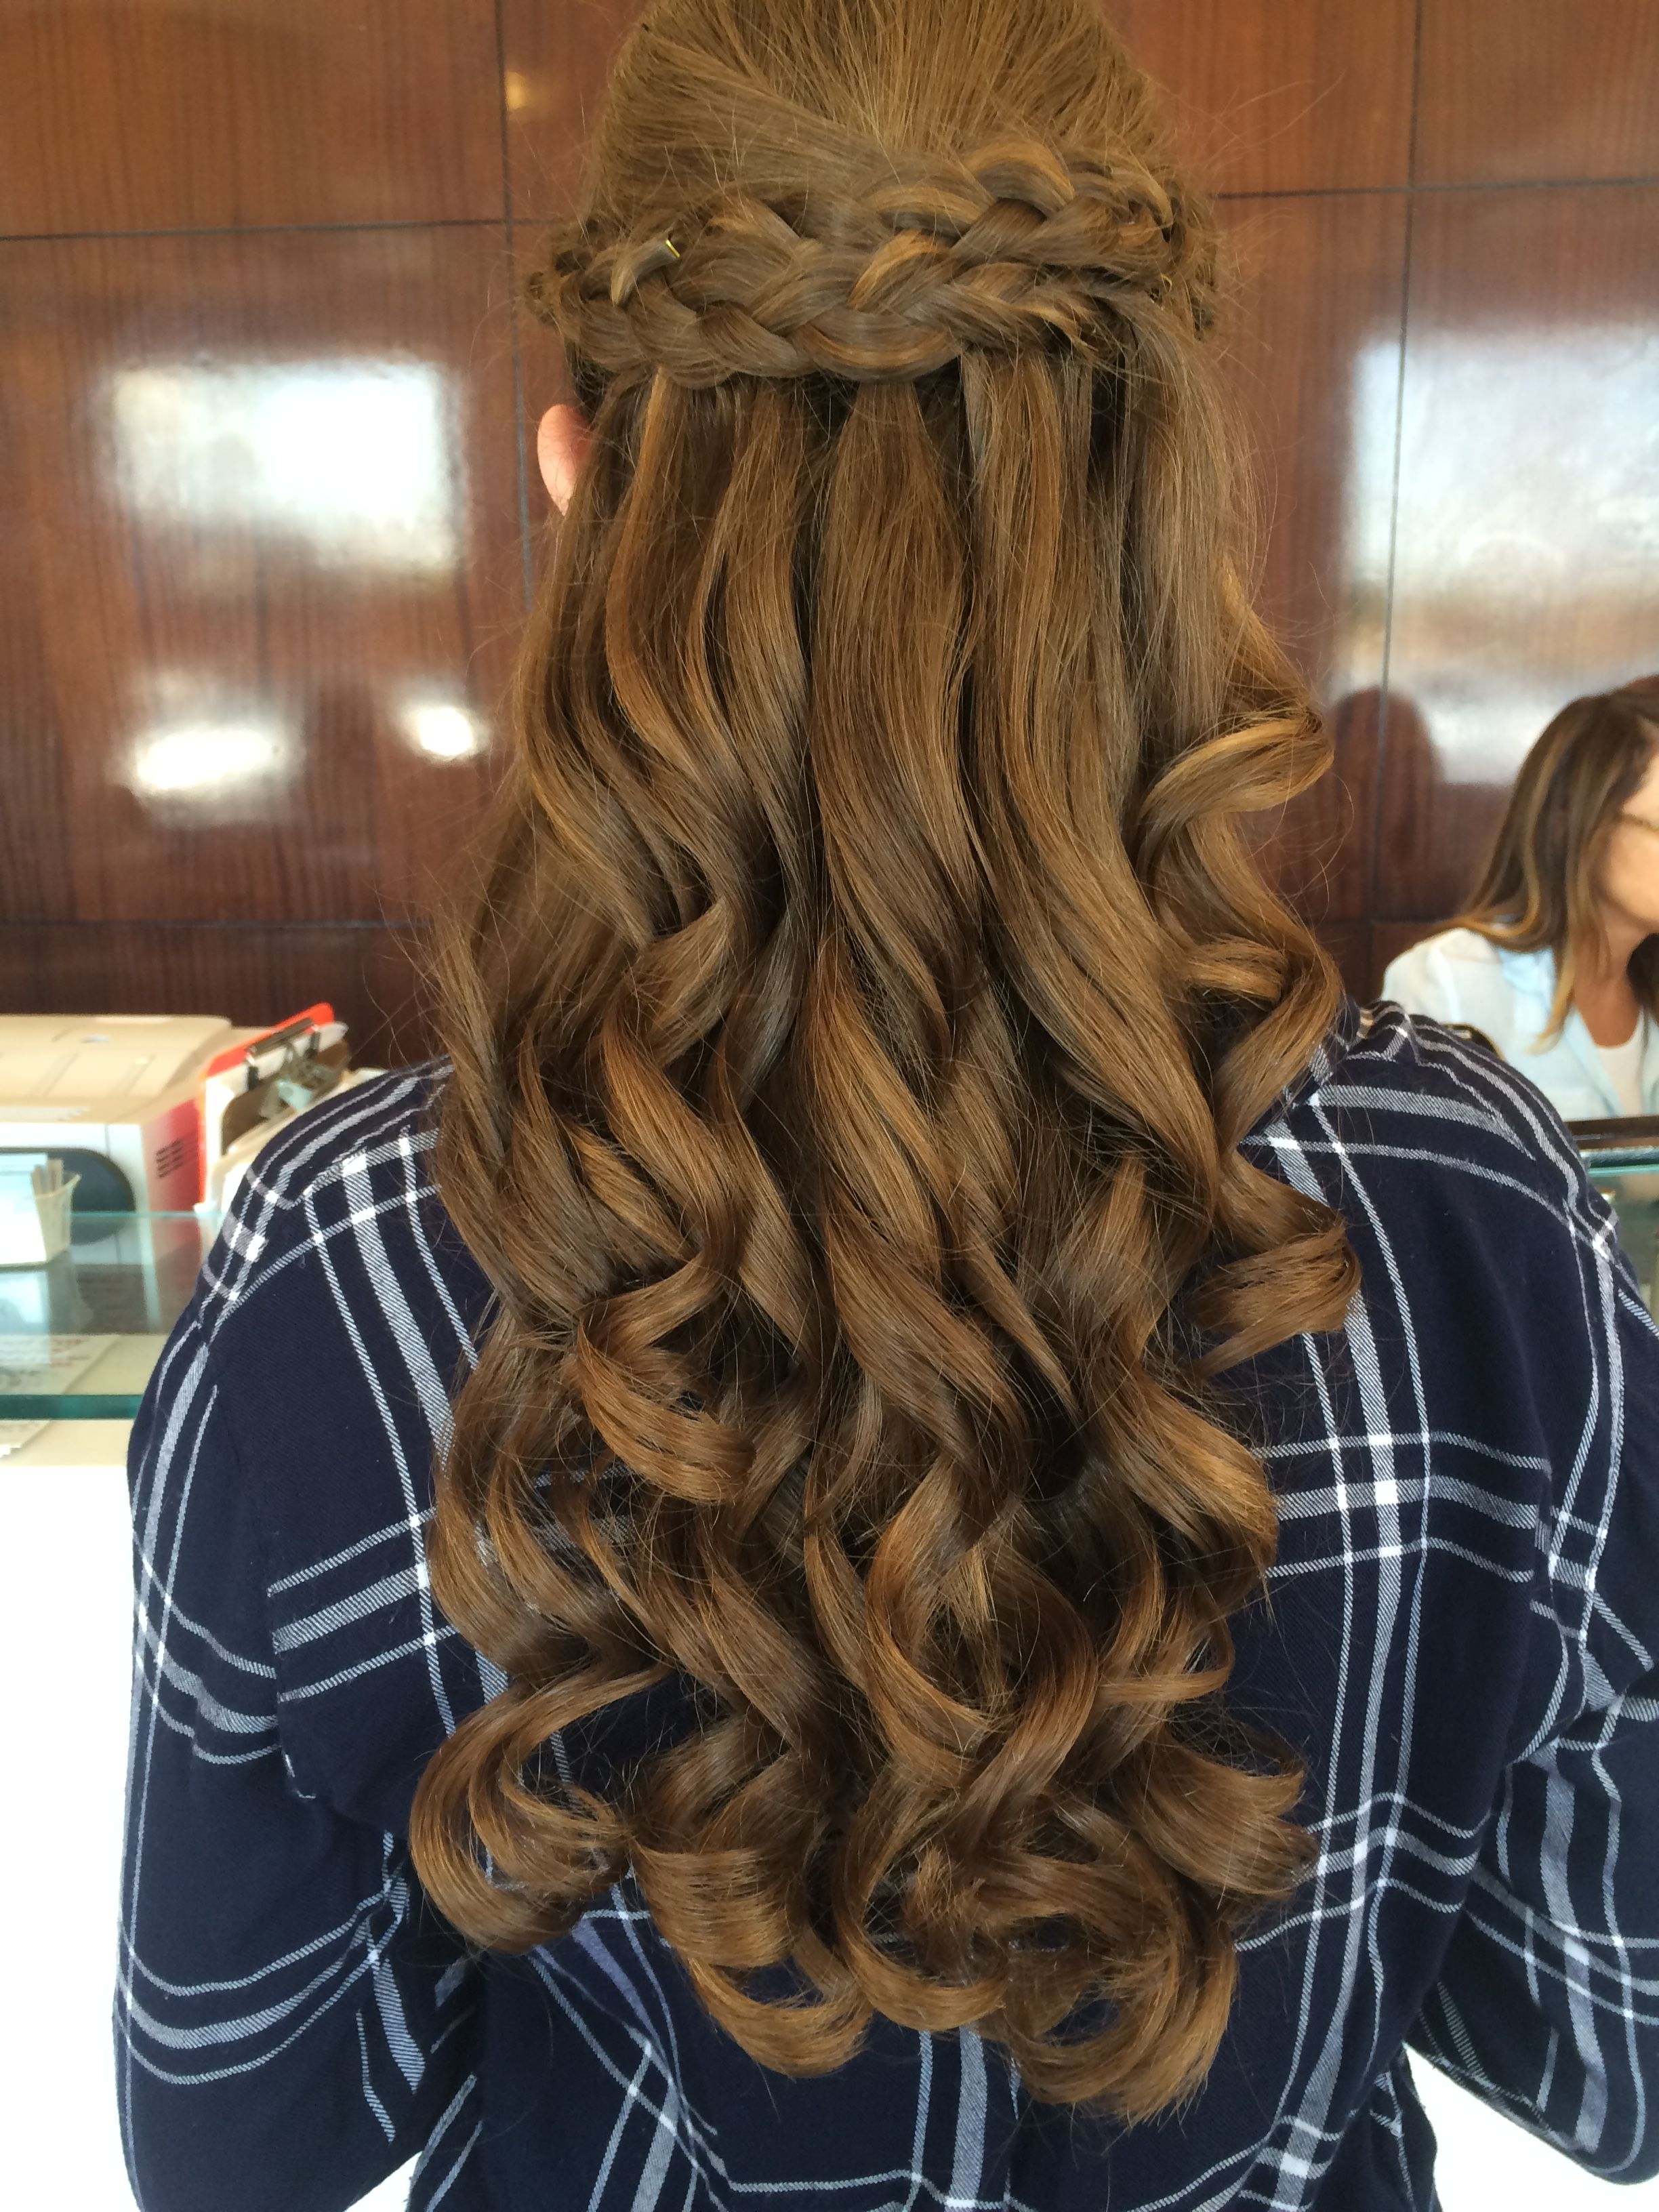 Updo Long Curly Formal Updo Hairstyle Medium Brunette Mahogany Side On View Curly Hair Up Curly Hair Updo Curly Hair Styles